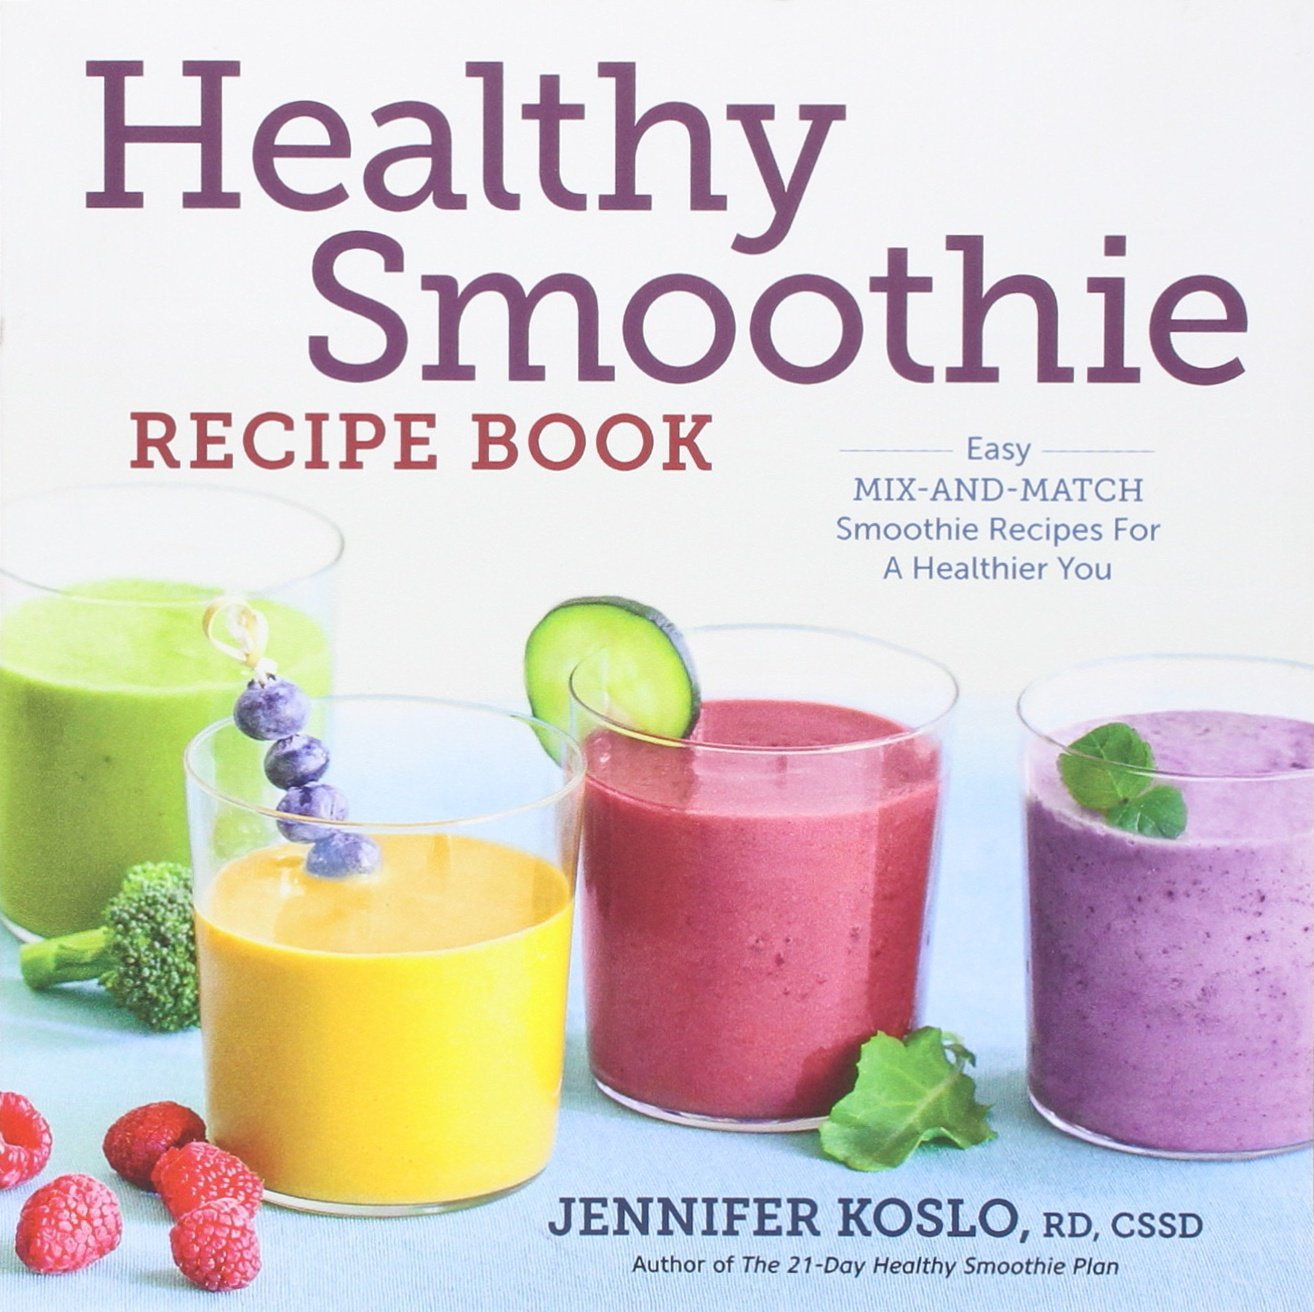 Simple Healthy Smoothie Recipes  Cheapest copy of Healthy Smoothie Recipe Book Easy Mix